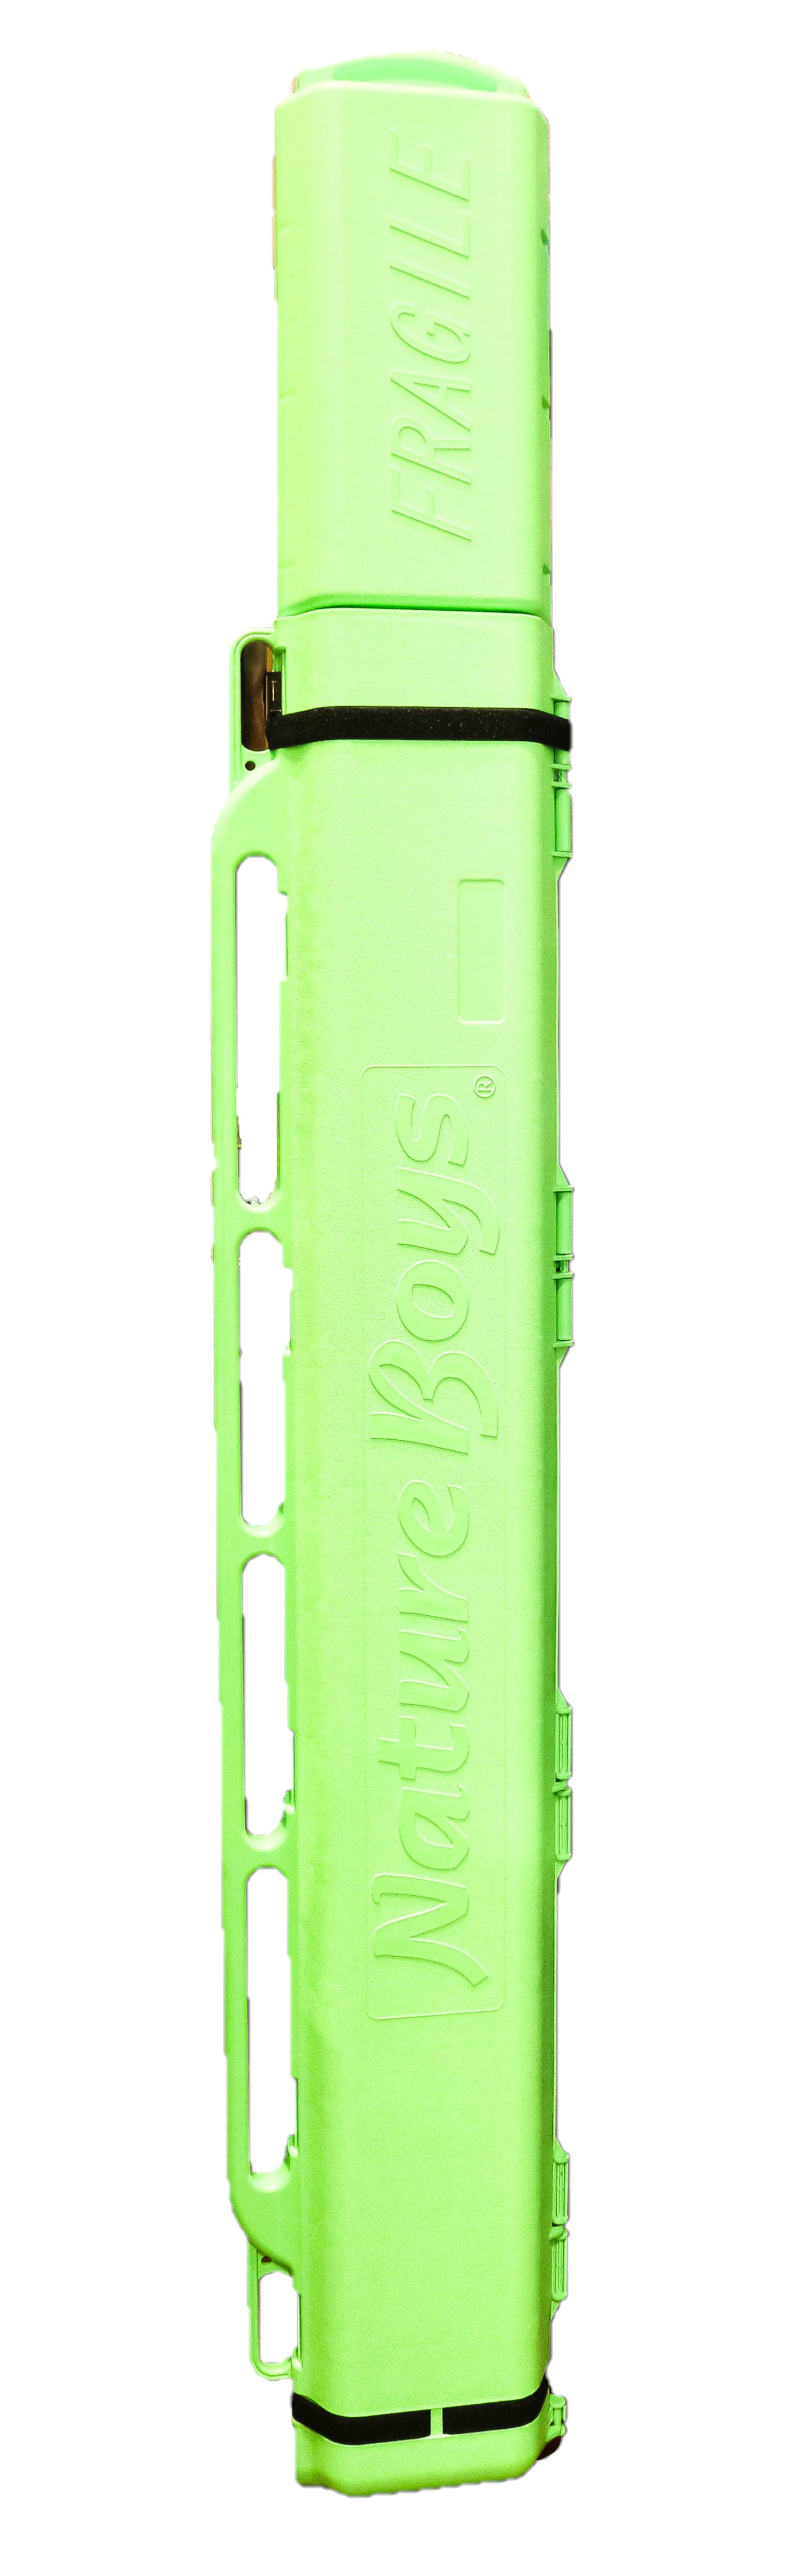 Nature Boys Rod Case Extendable 1880 to 2380 x 130 x 85mm 5.7Kg Lime (0026)